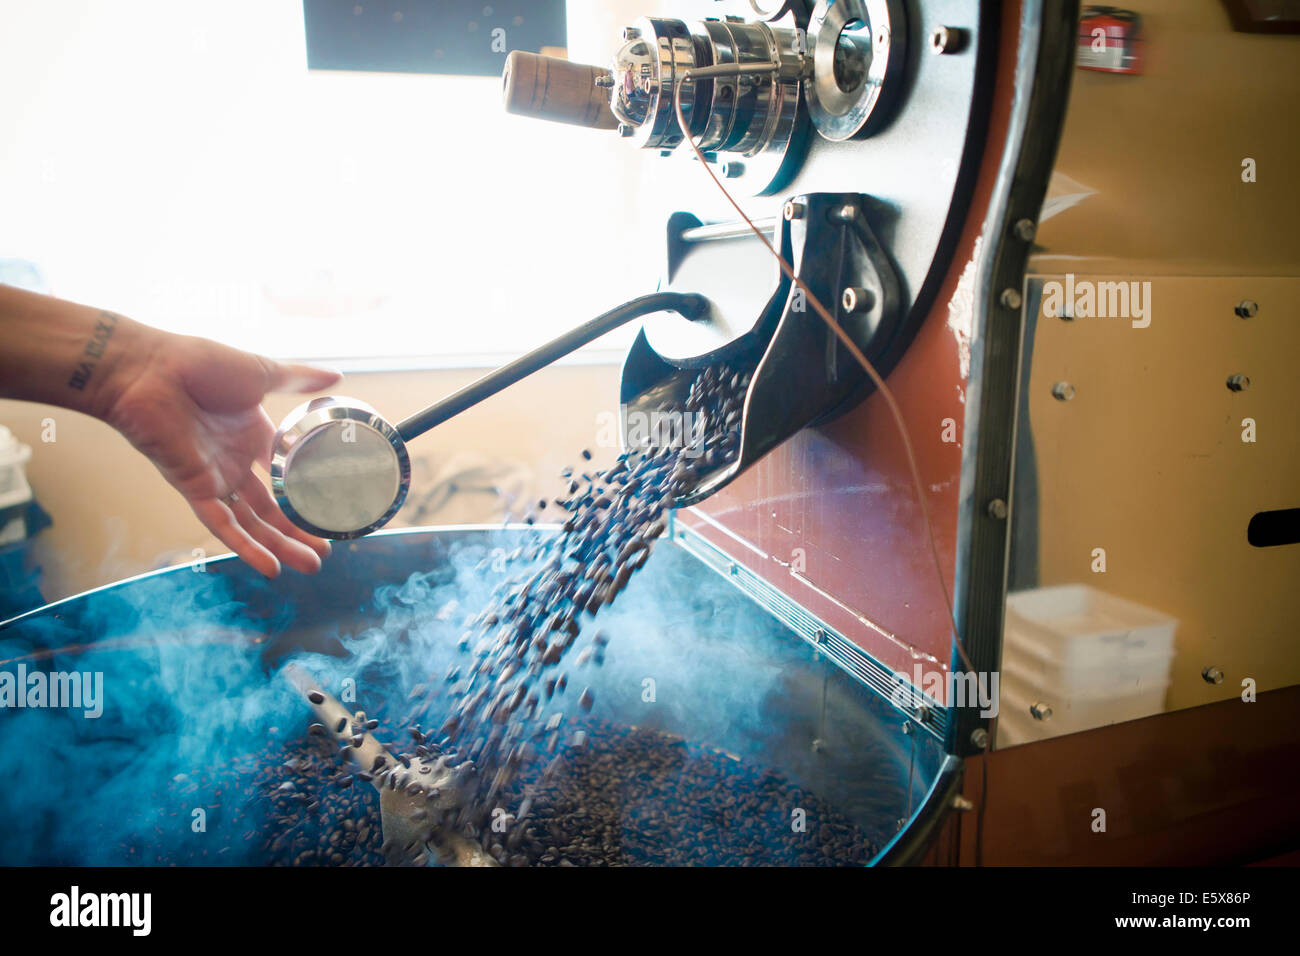 Female hand using industrial coffee roasting machine in cafe - Stock Image